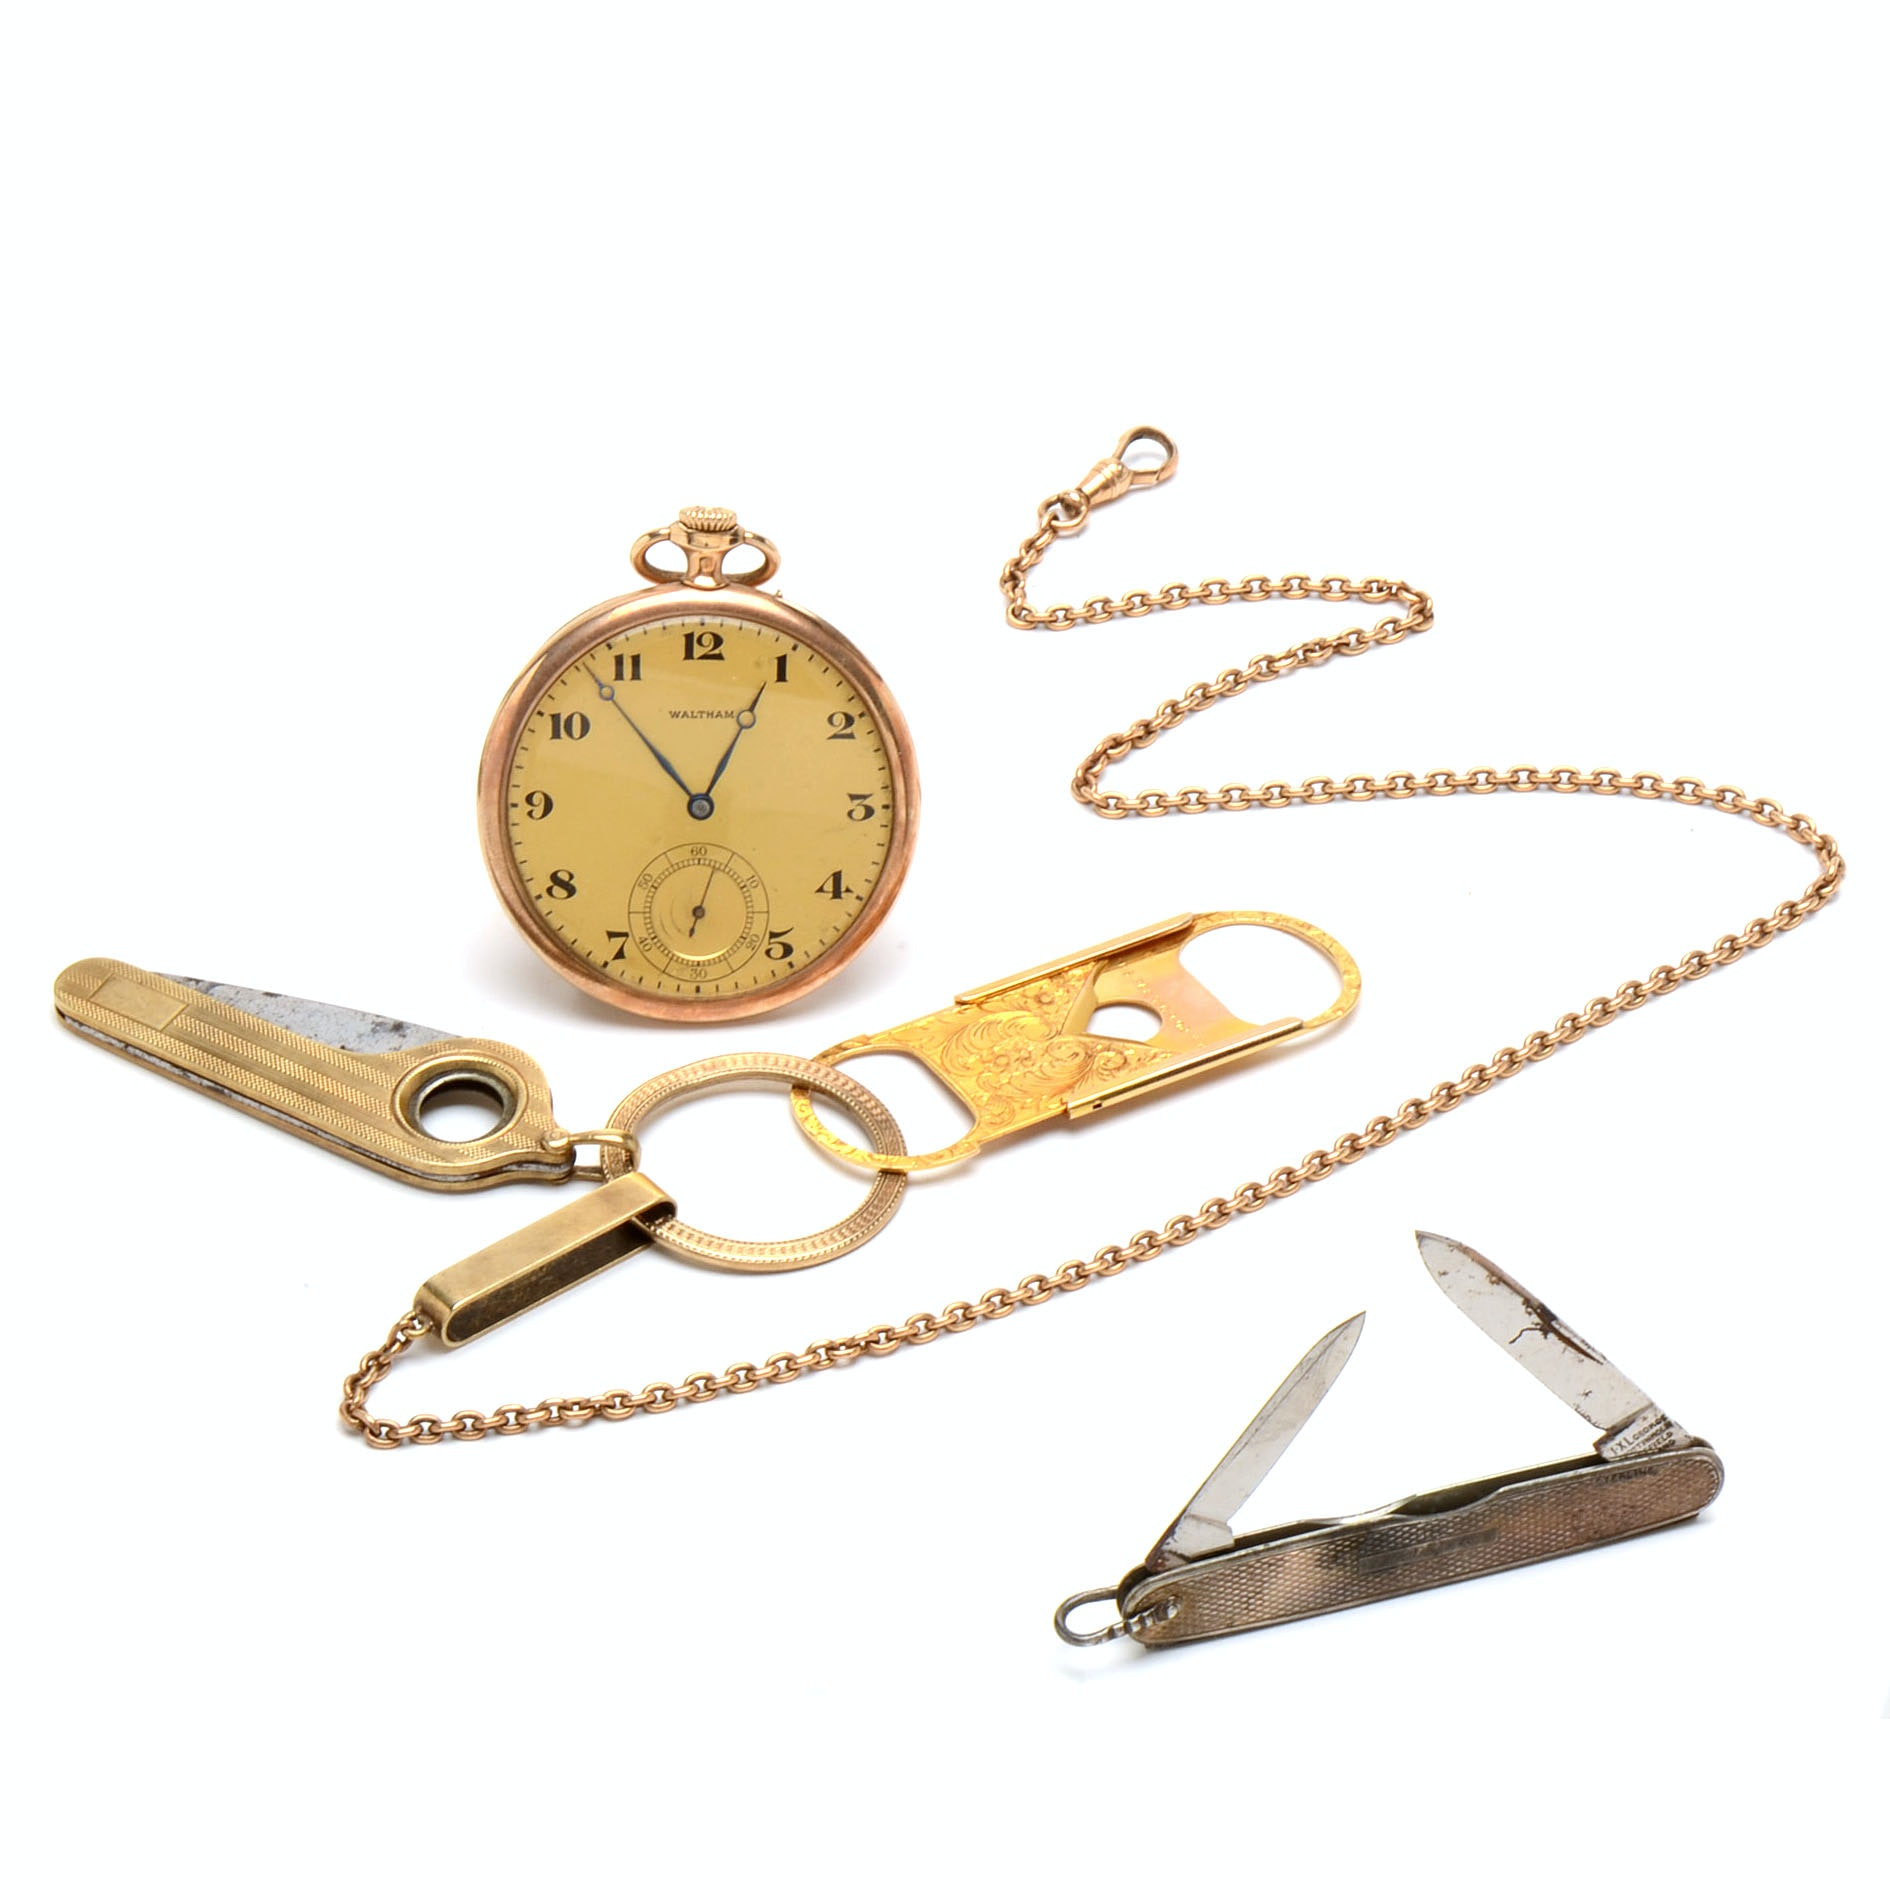 14K Gold Waltham Pocket Watch With 14K and Sterling Accessories